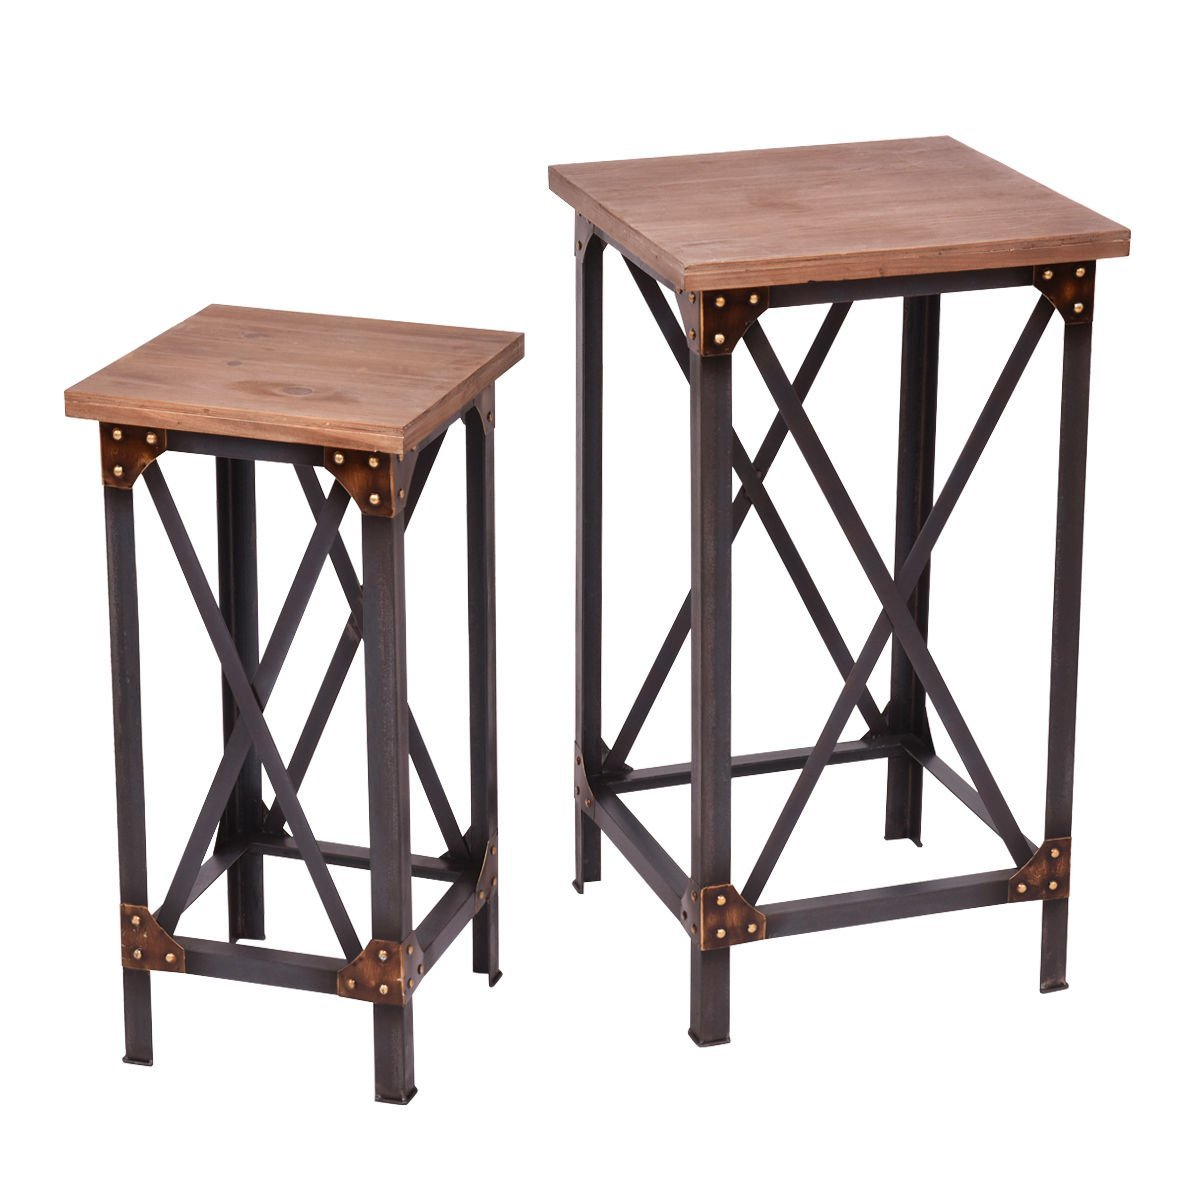 furniture plant stands find accent table stand get quotations set wood metal rustic industrial tables side end display red antique coffee with glass top vintage drop leaf dining